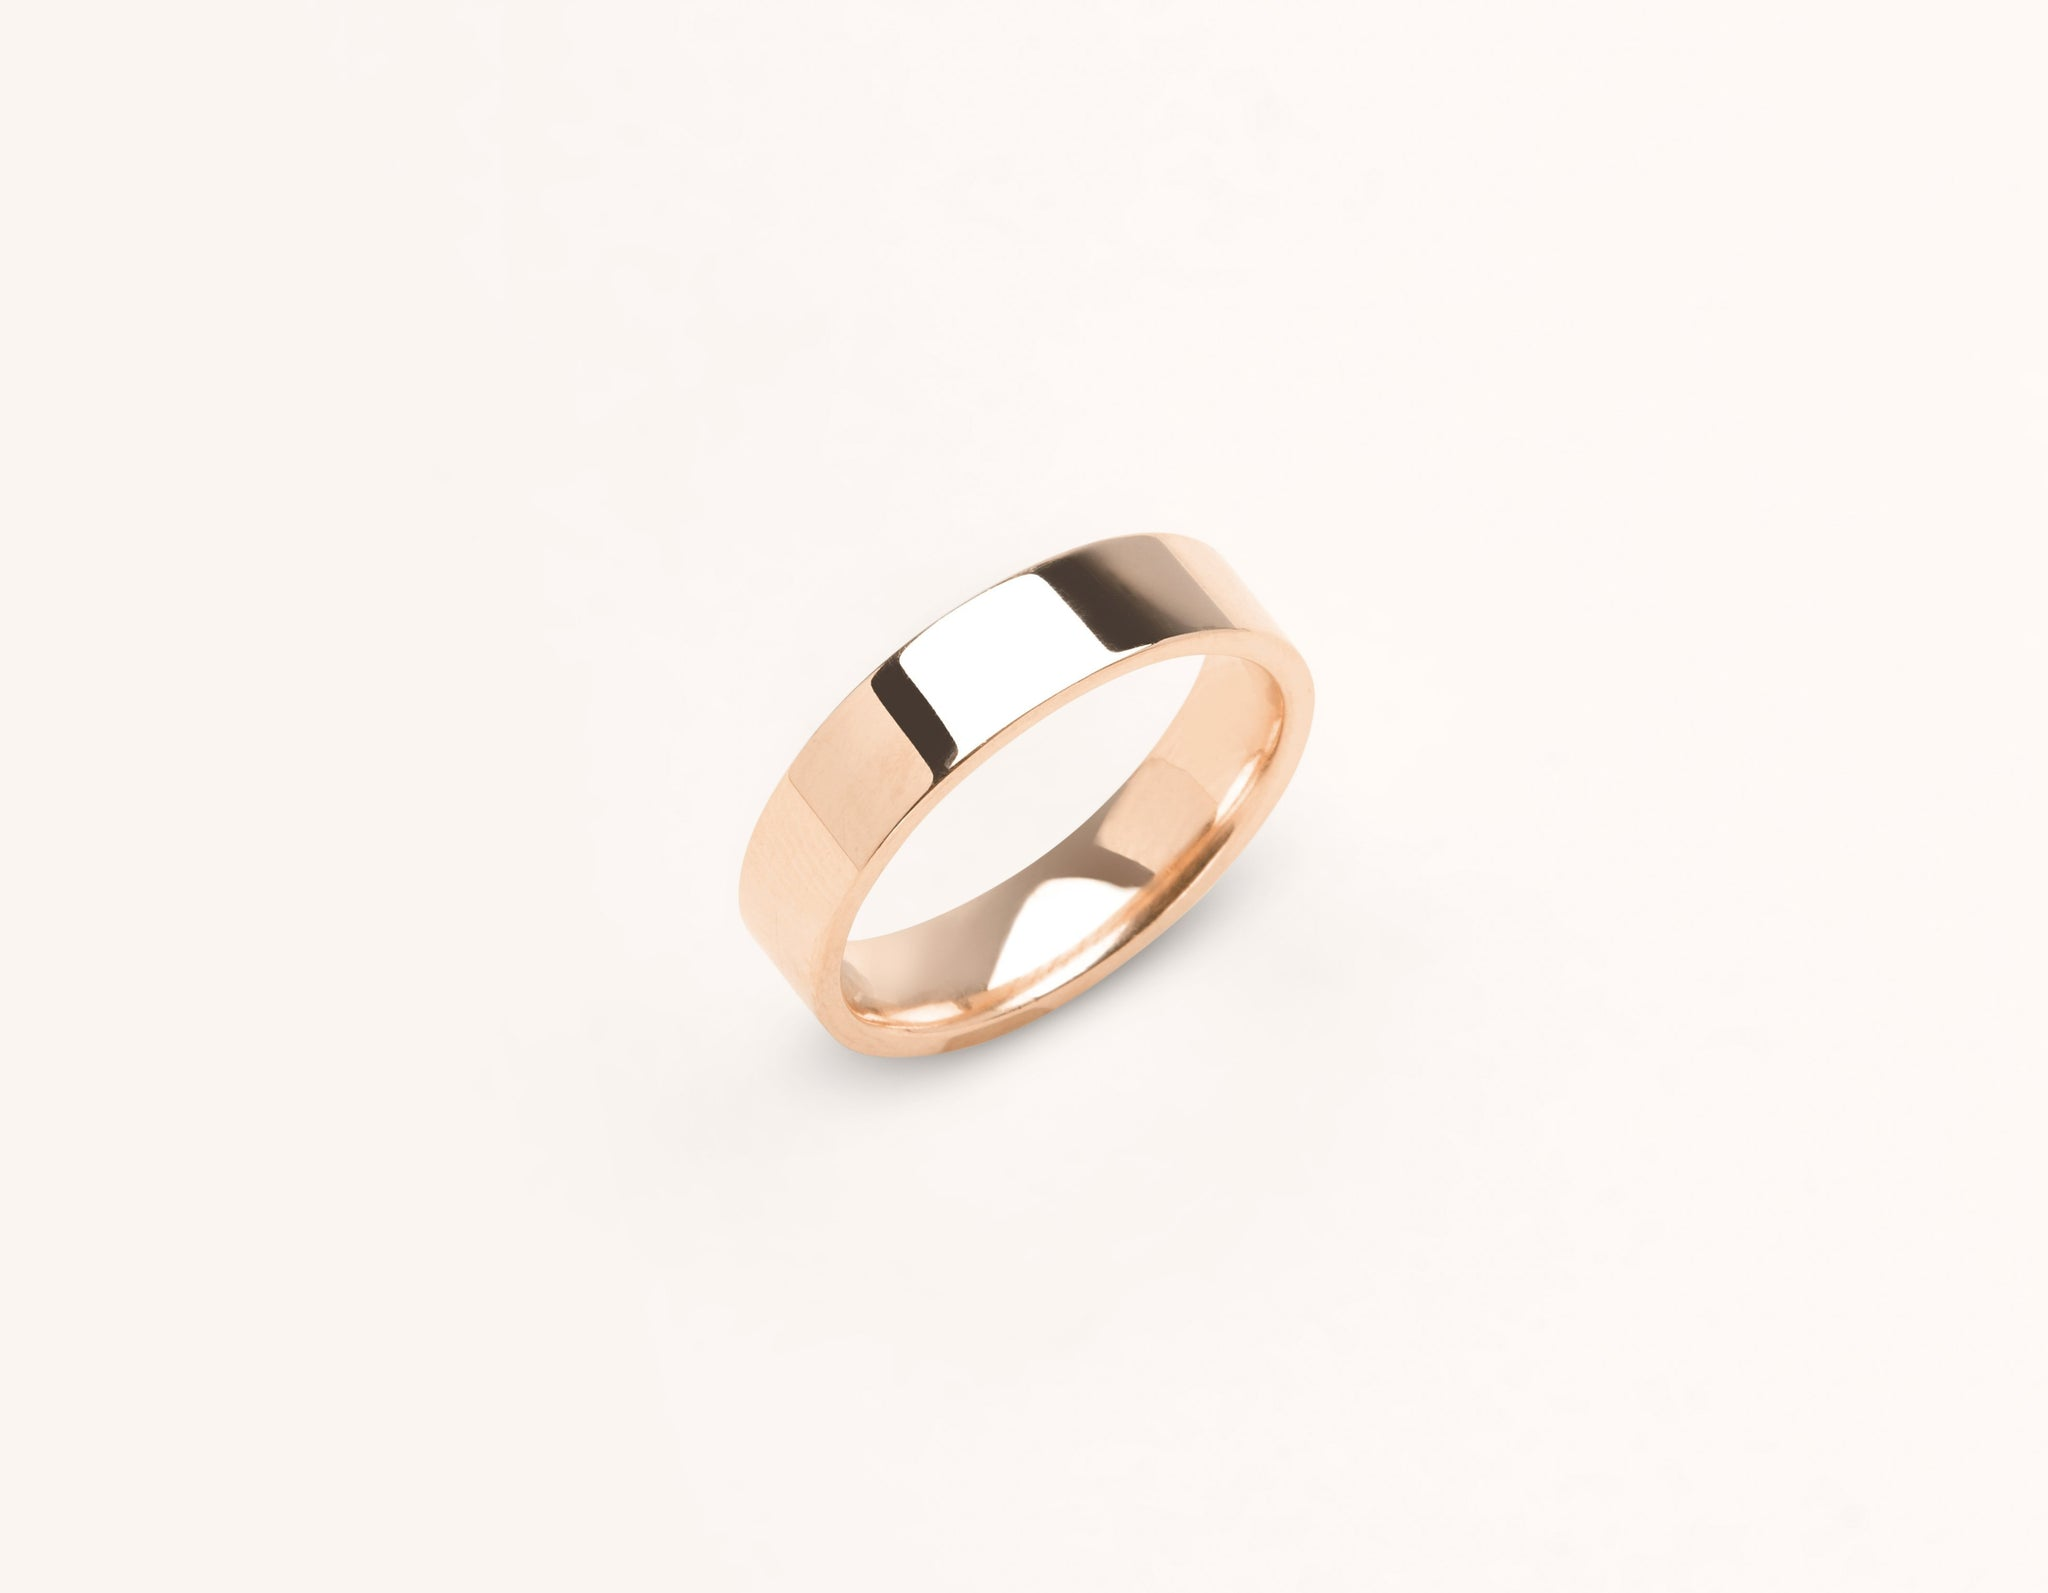 Minimalist 18k solid rose gold 4.5 mm Flat Wedding Band for men and women Vrai and Oro